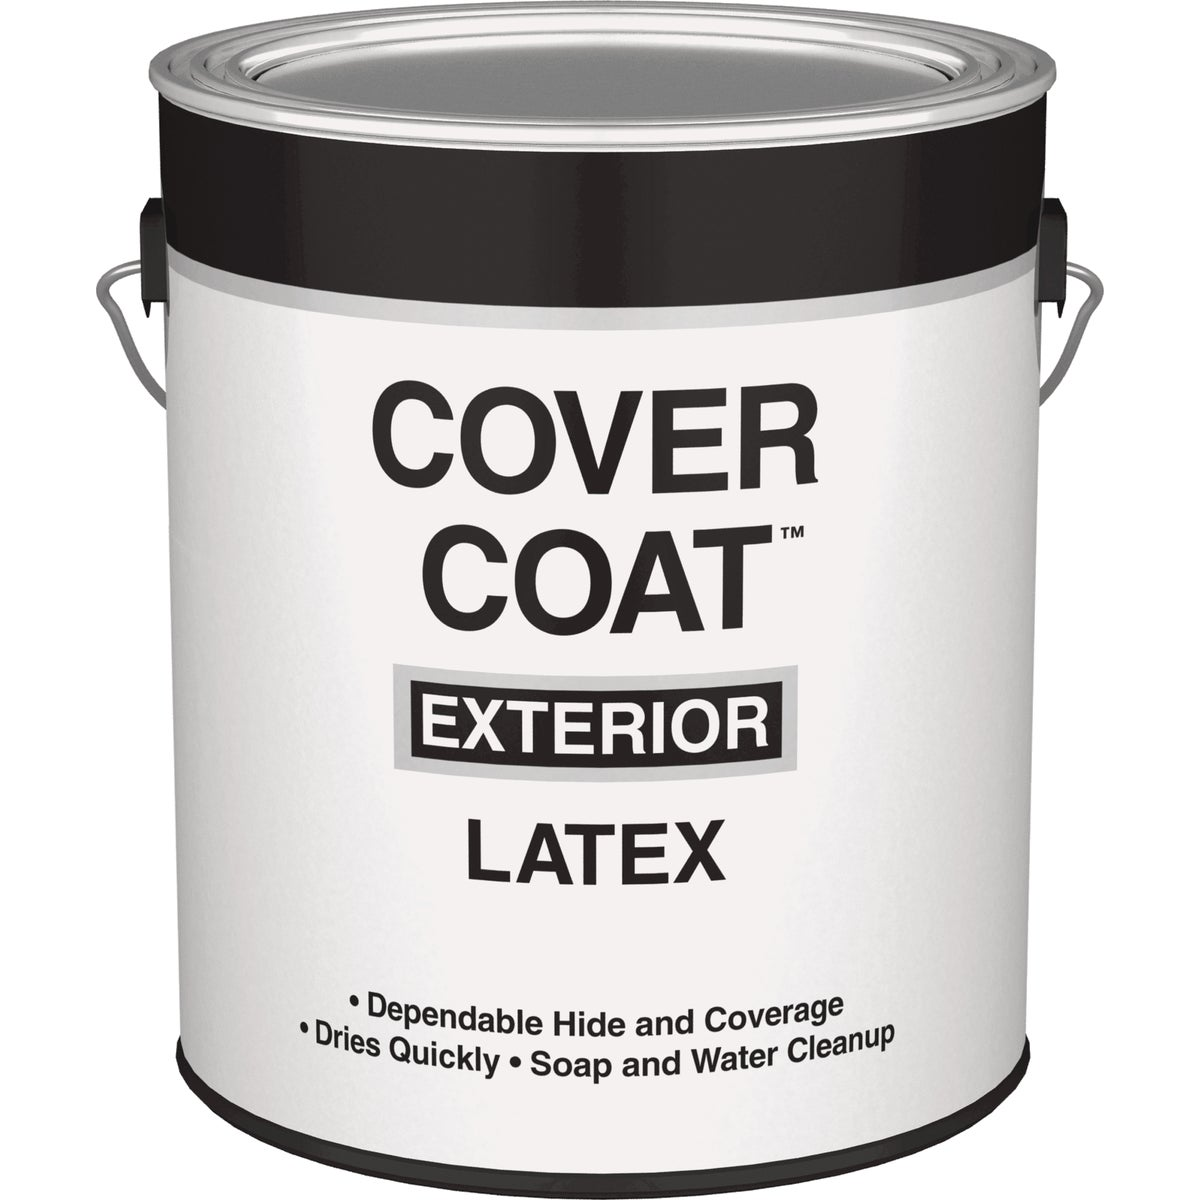 EXT FLAT WHITE PAINT - 044.0000555.007 by Valspar Corp